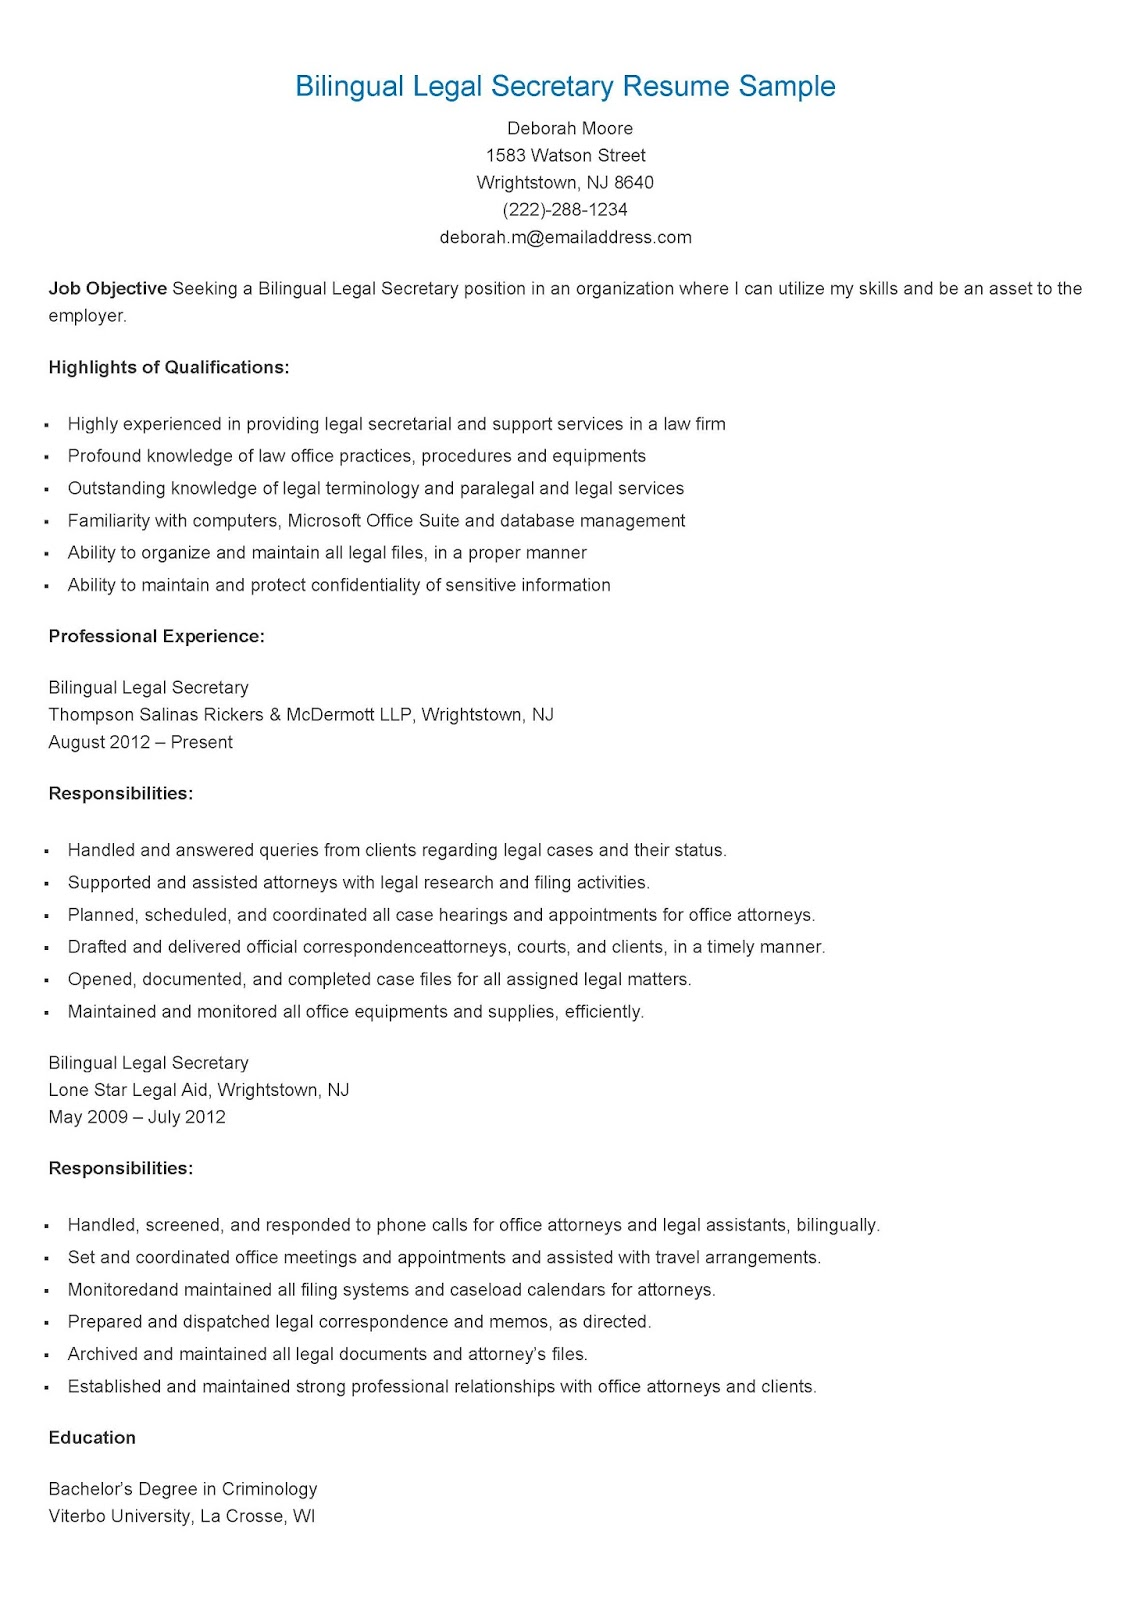 Resume Sample For Secretary Resume Samples Bilingual Legal Secretary Resume Sample